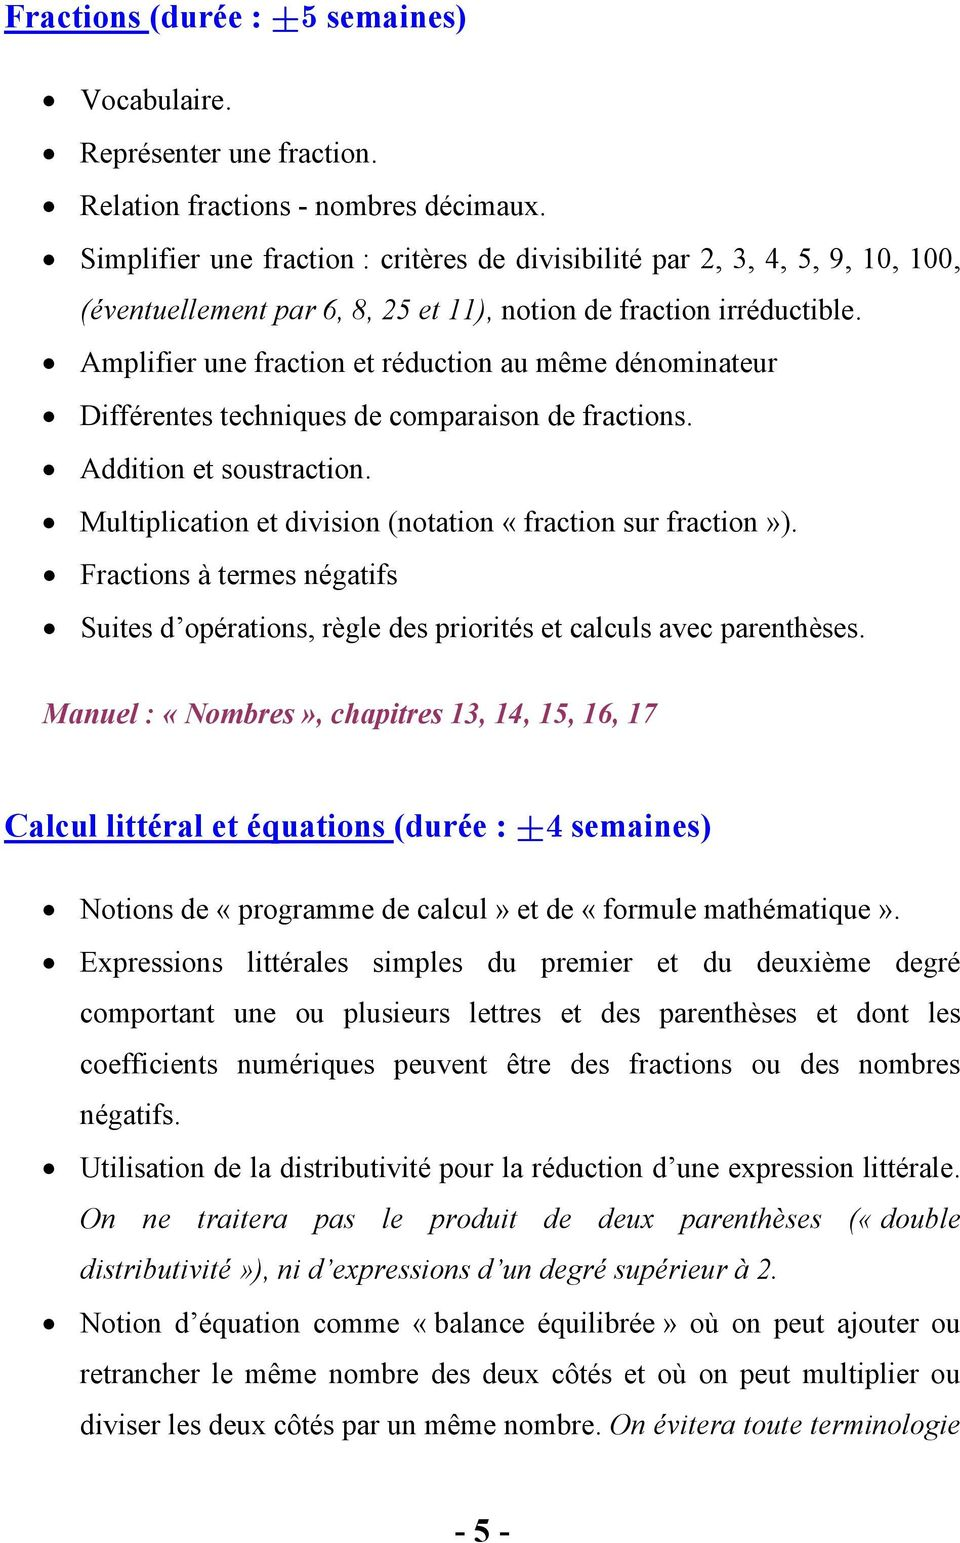 Amplifier une fraction et réduction au même dénominateur Différentes techniques de comparaison de fractions. Addition et soustraction. Multiplication et division (notation «fraction sur fraction»).